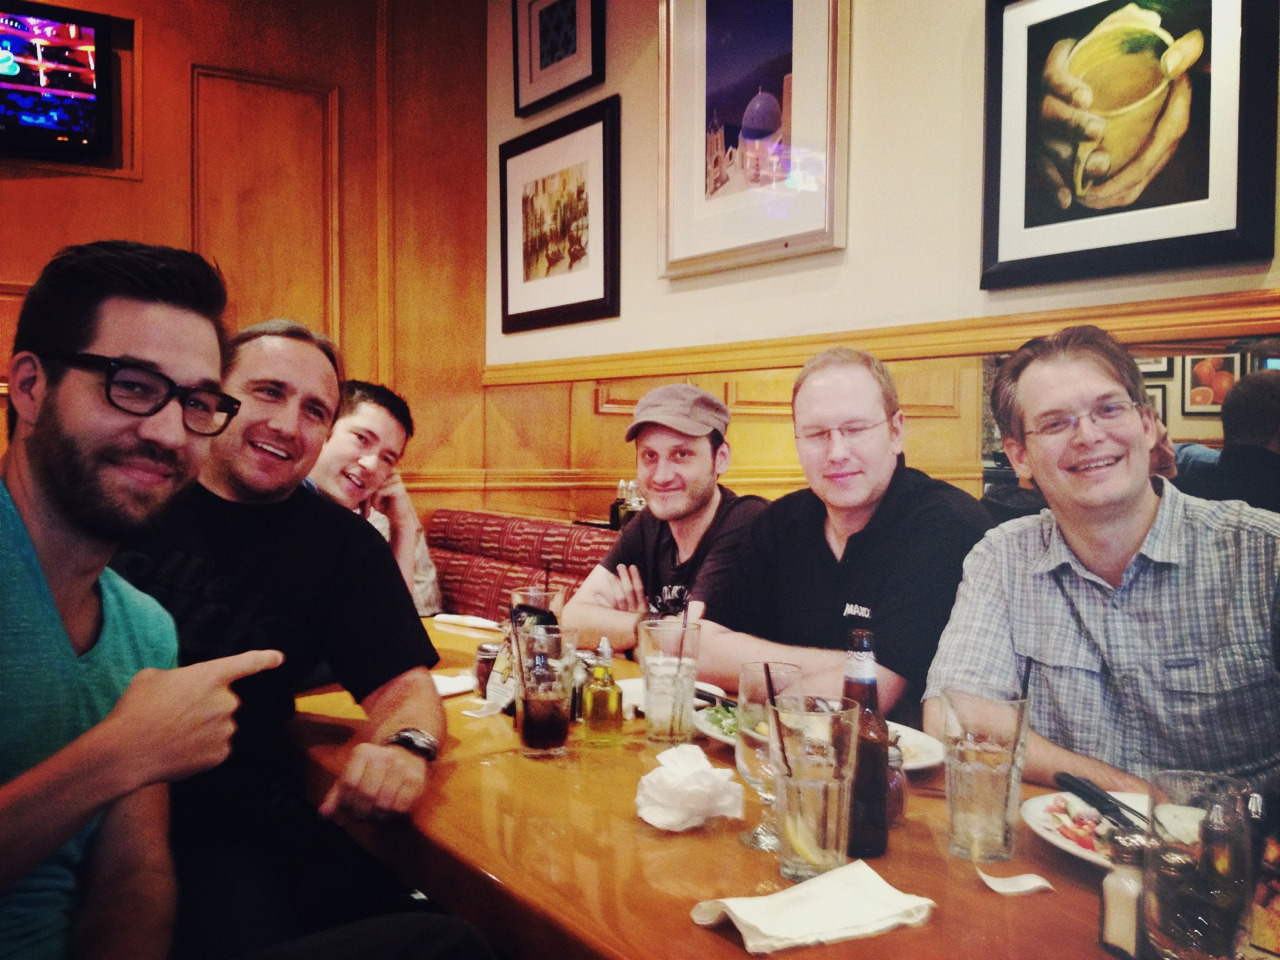 I got to eat with some of the dev team behind Cinema 4D. Thanks for building powerful and fun software.